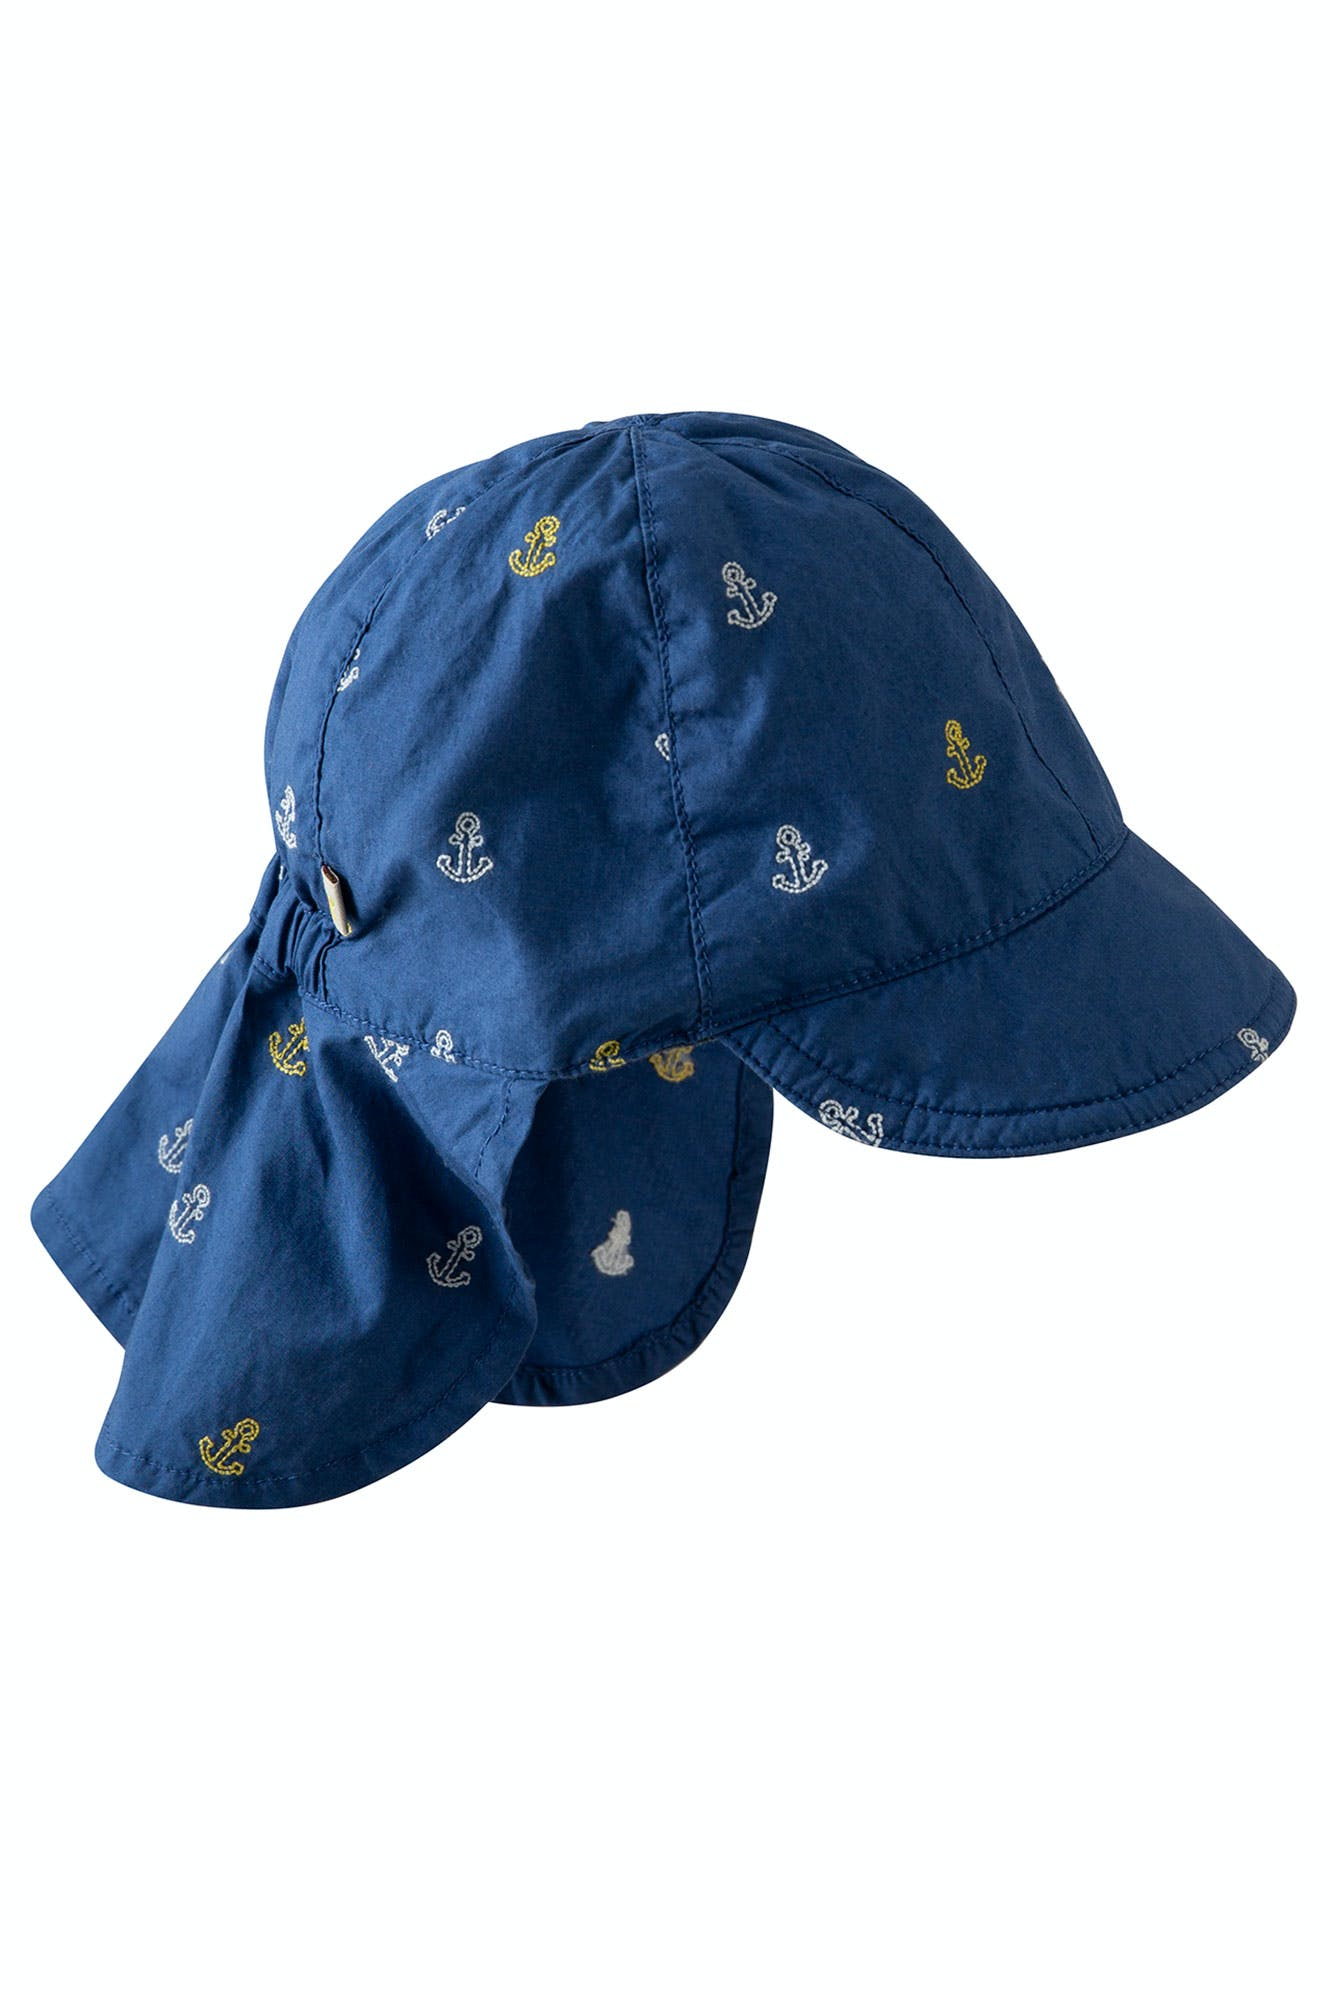 Click to view product details and reviews for Legionnaires Hat.